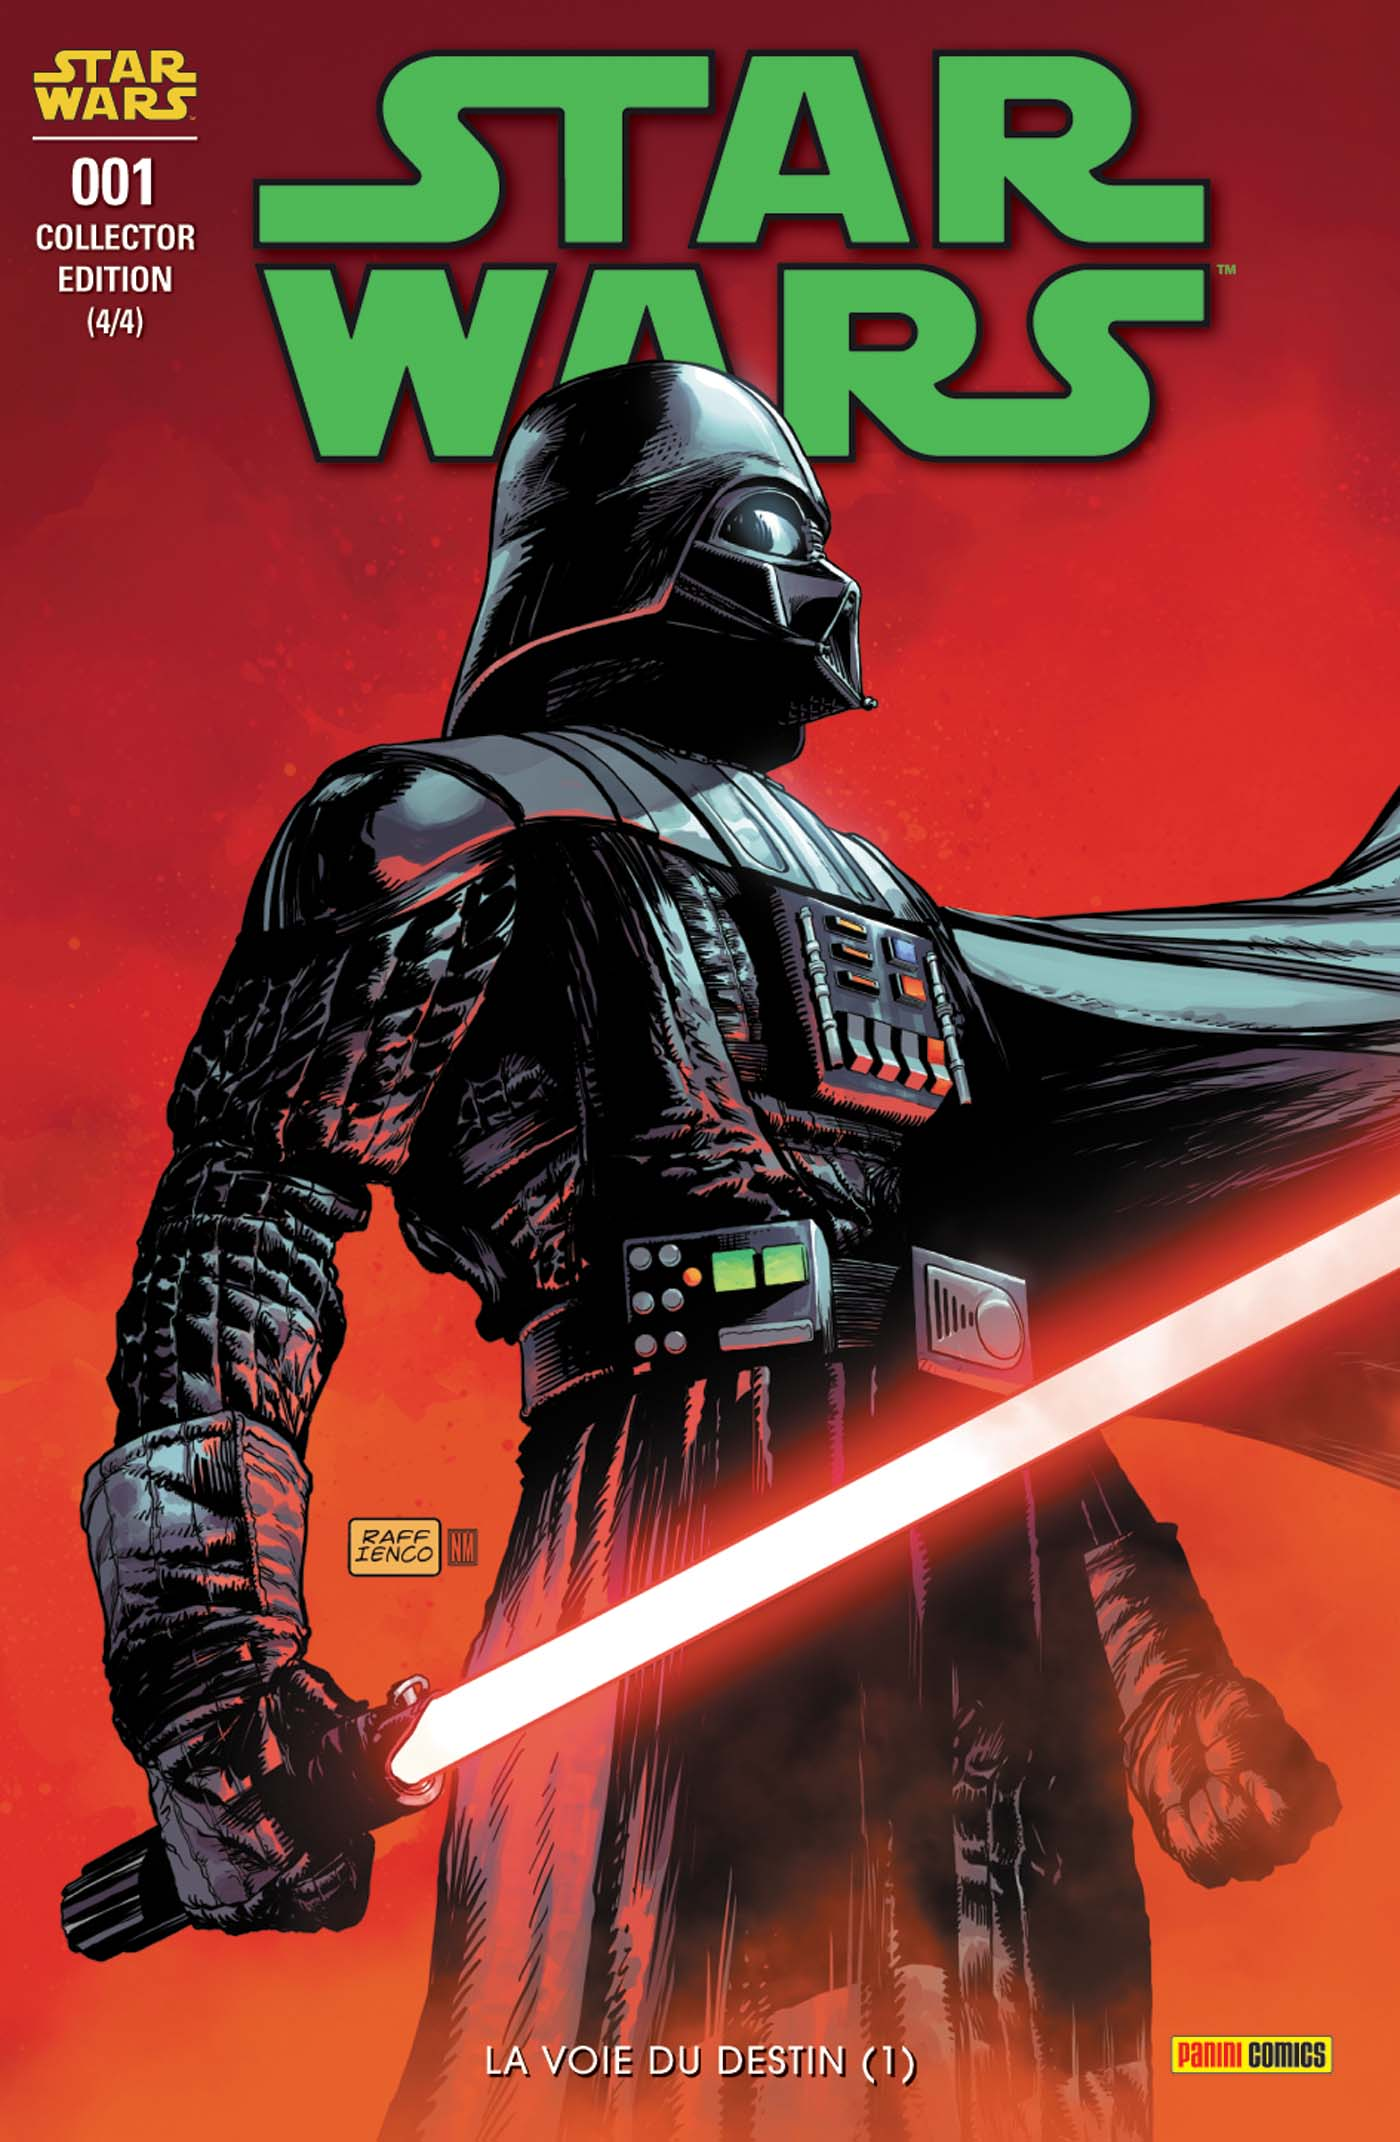 Star Wars 1 - Couverture collector 4/4